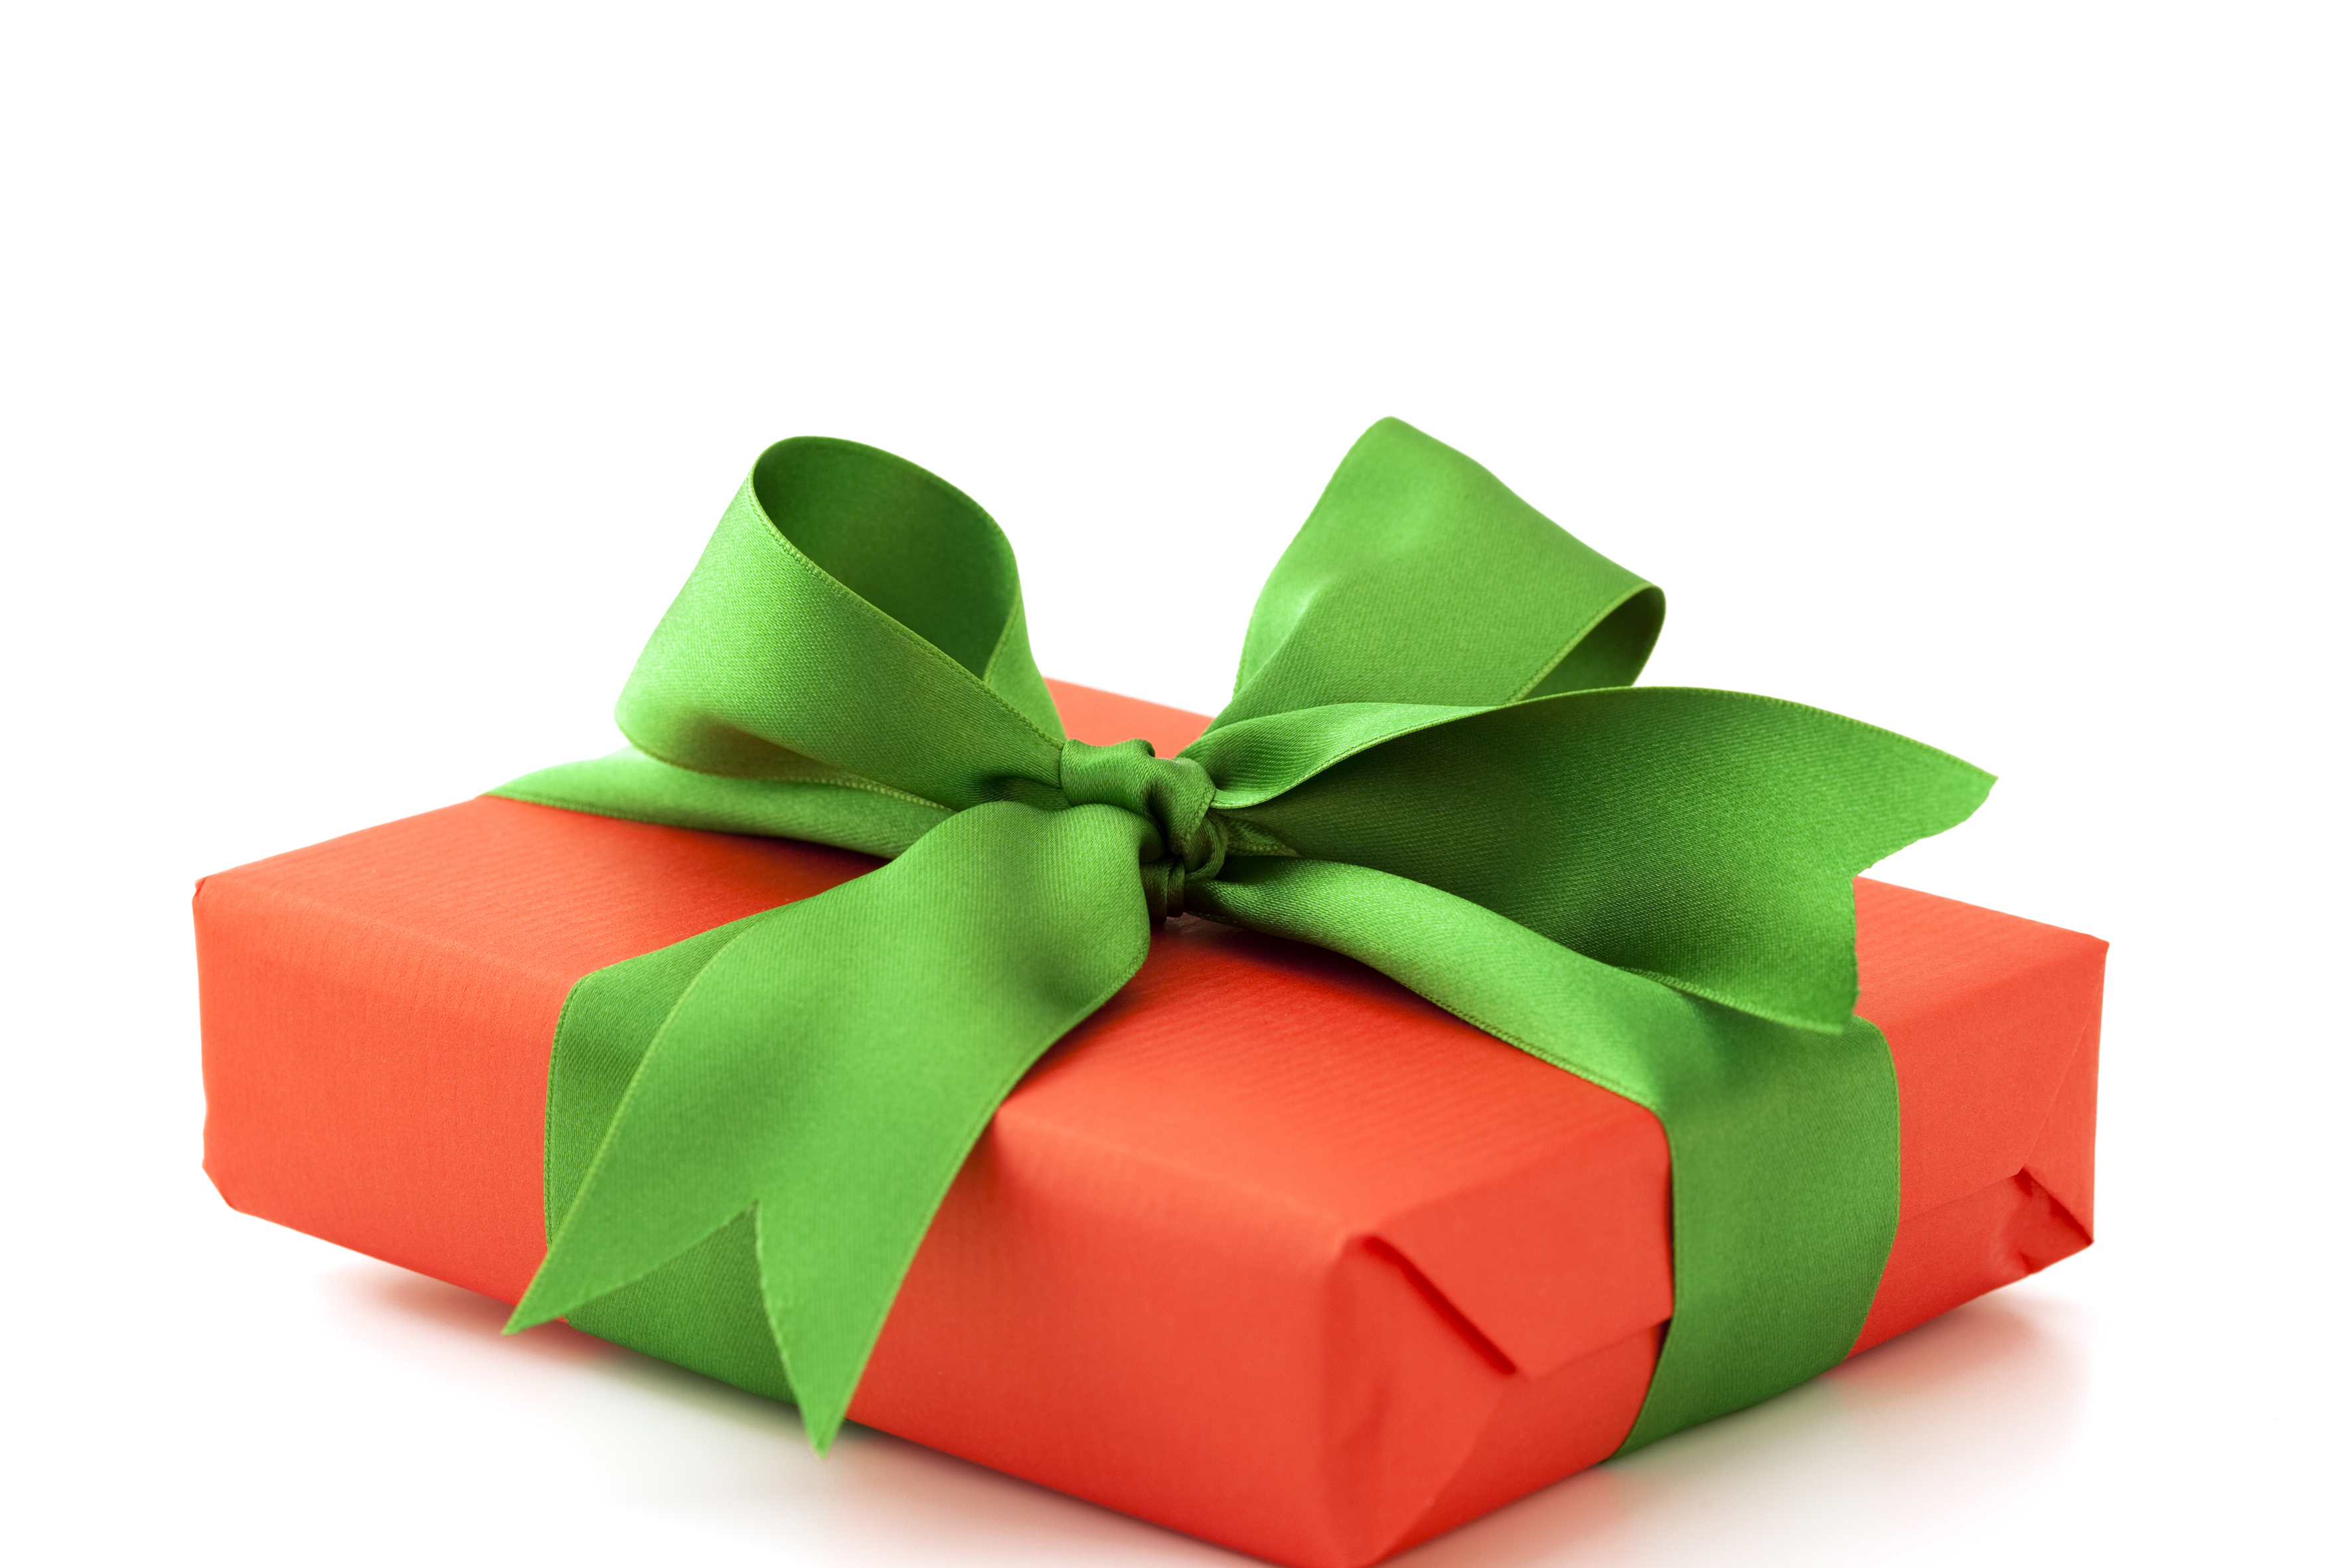 Red Gift Box with Green Band #4240484, 3543x2362 | All For Desktop